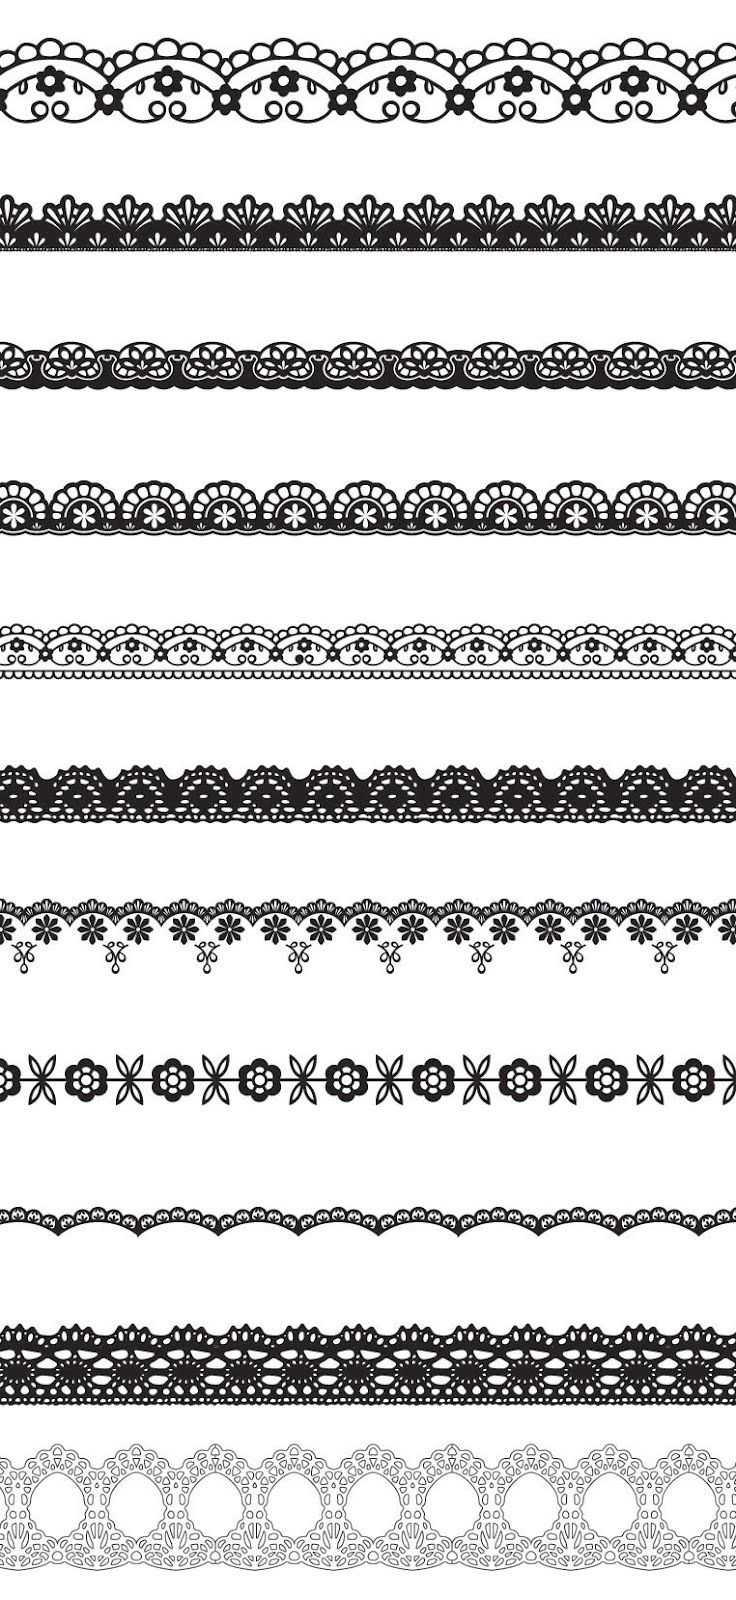 Kldezign svg love these designs have to figure out if i can use on